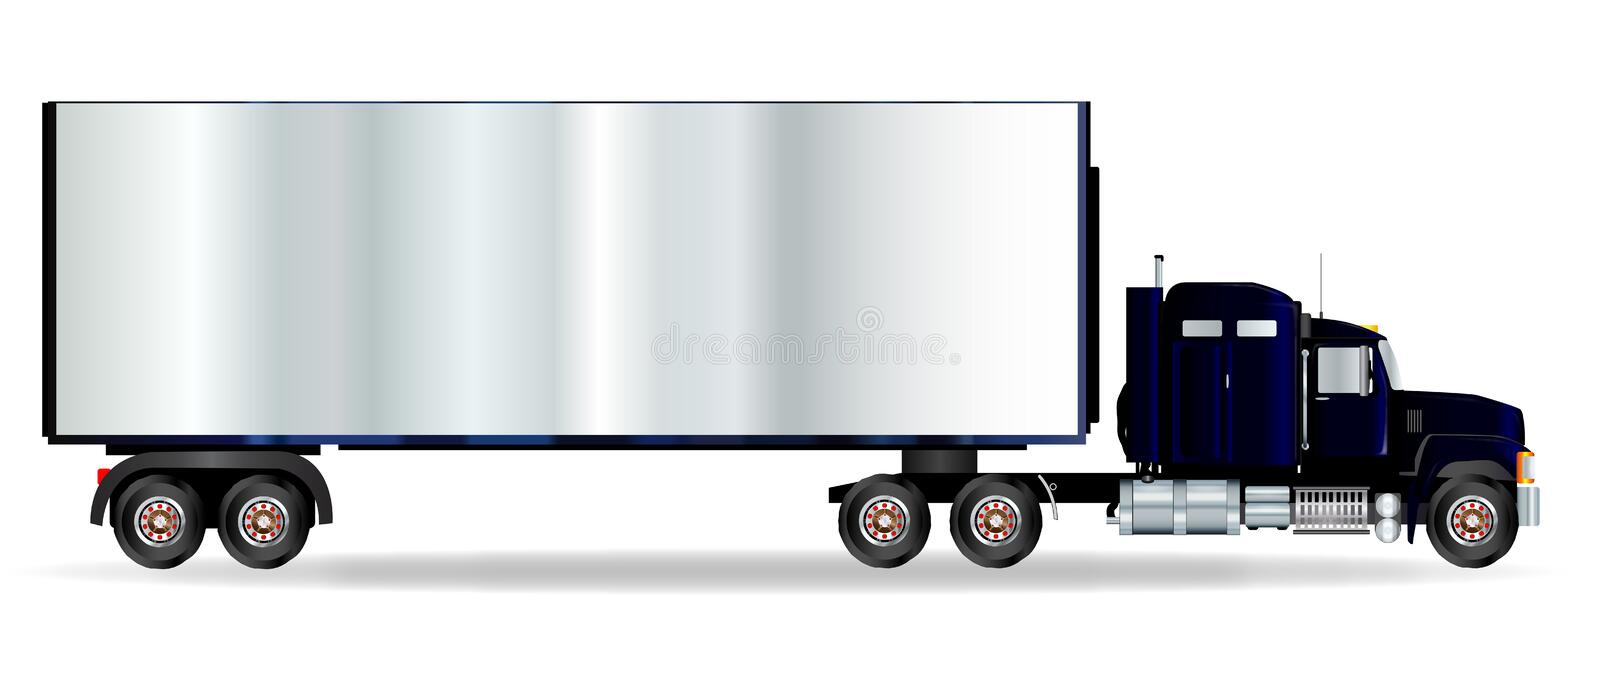 Truck Tractor Unit And Trailer stock illustration